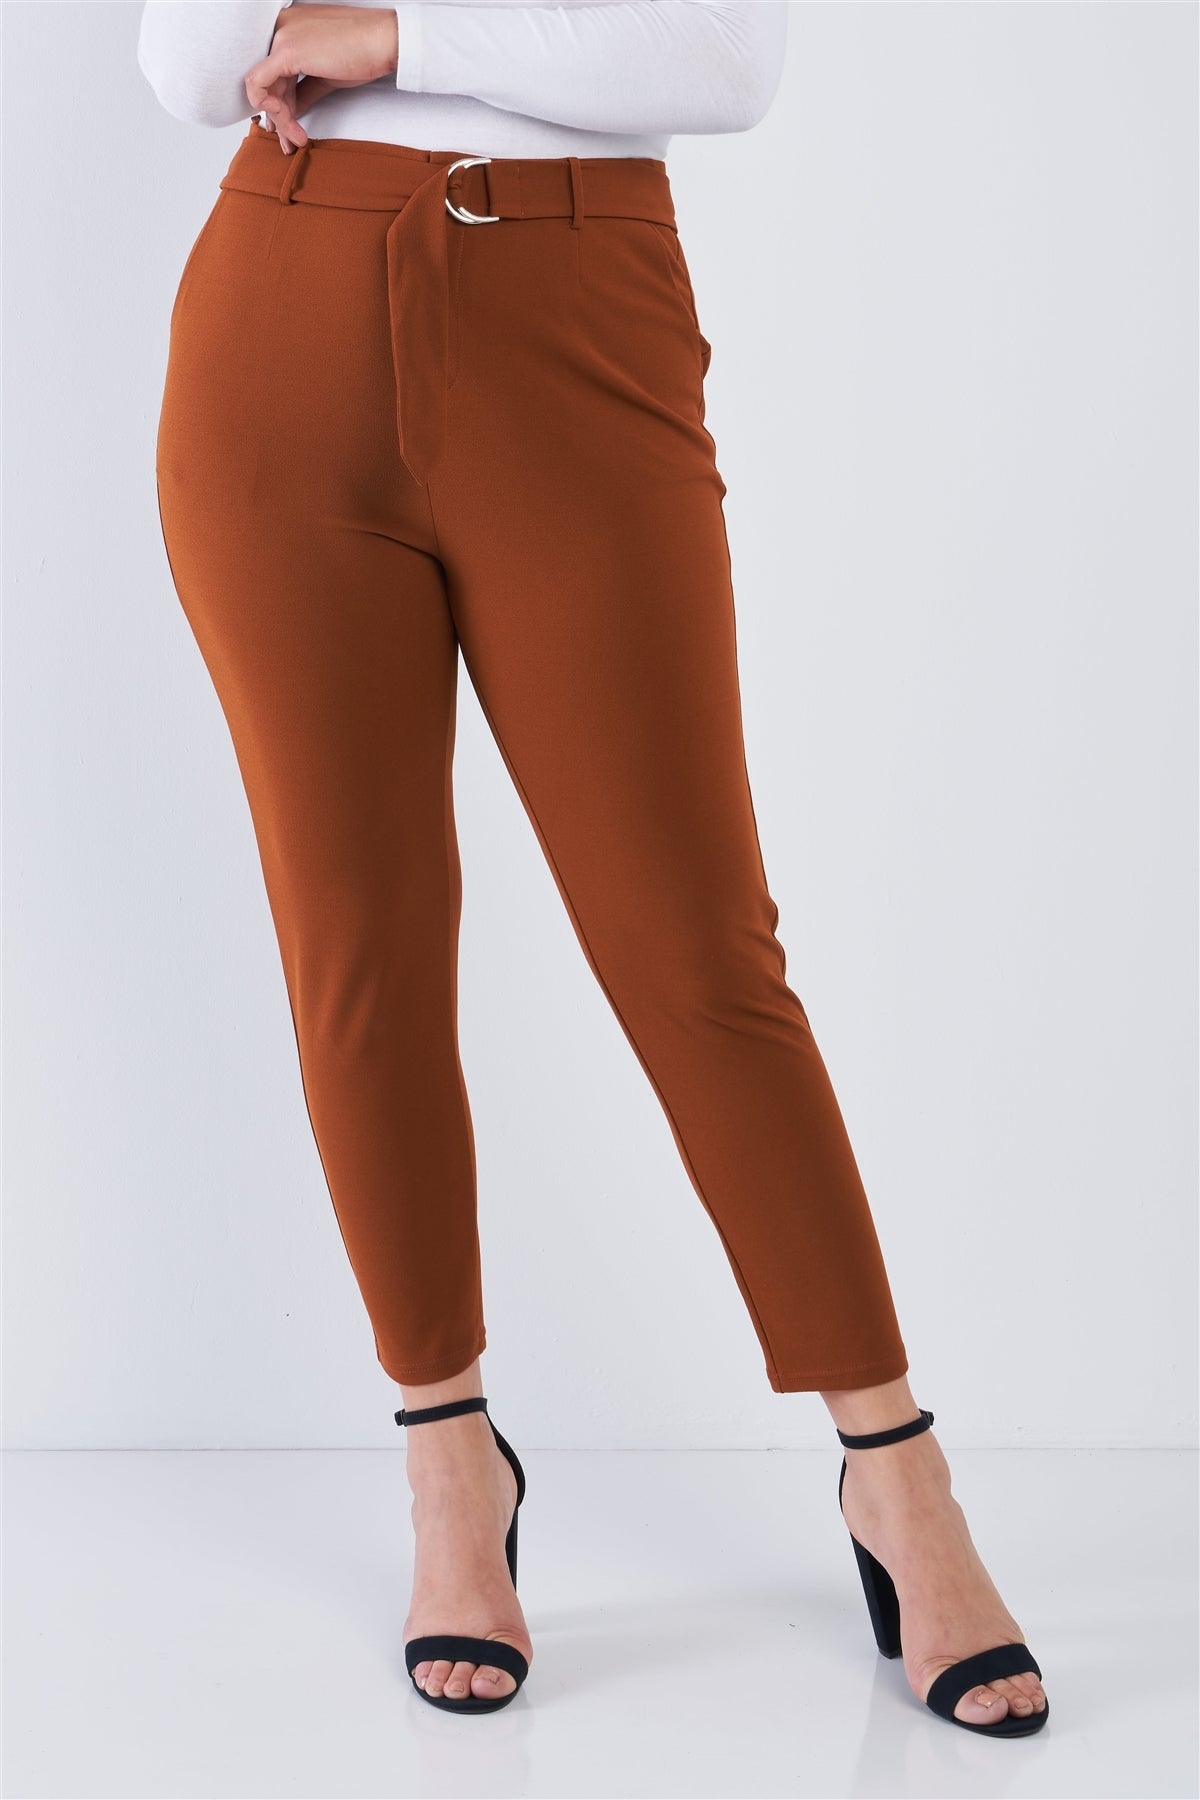 Plus Size High Waisted Ankle Length Pants - Boujee Boutique Incorporated